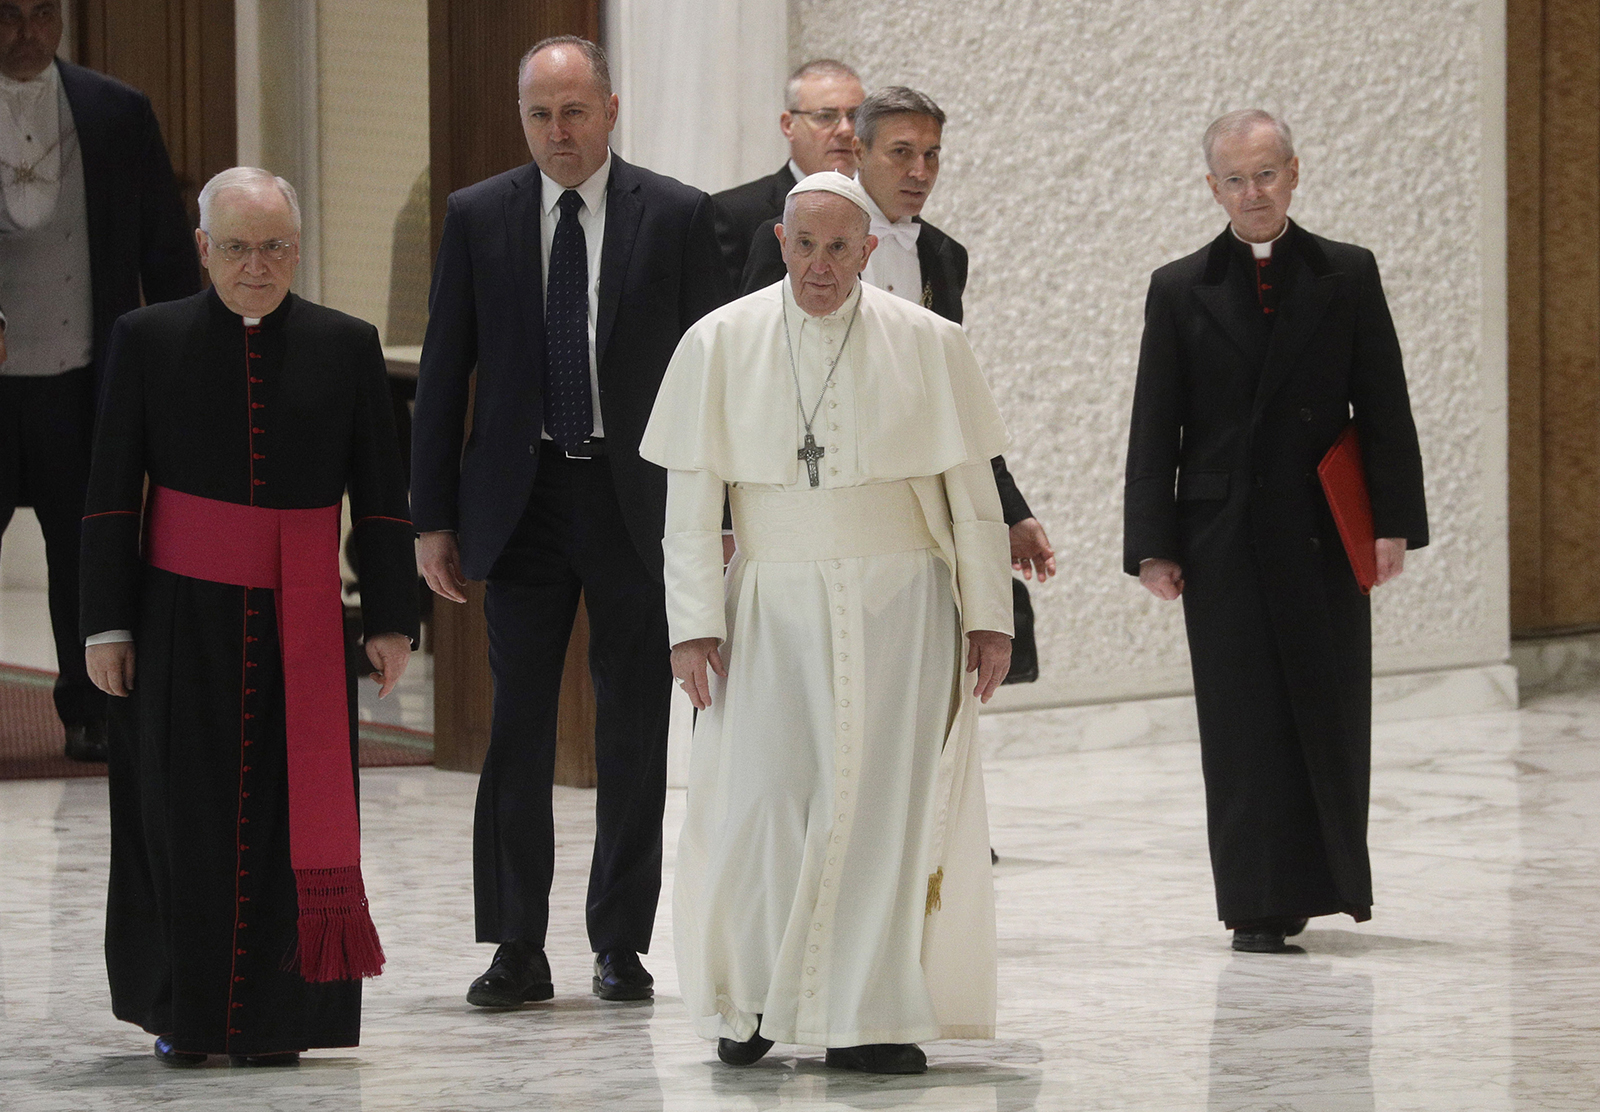 In this Dec. 21, 2020, file photo, Pope Francis exchanges holiday greetings with Vatican employees in the Paul VI Hall at the Vatican. (AP Photo/Gregorio Borgia, file)